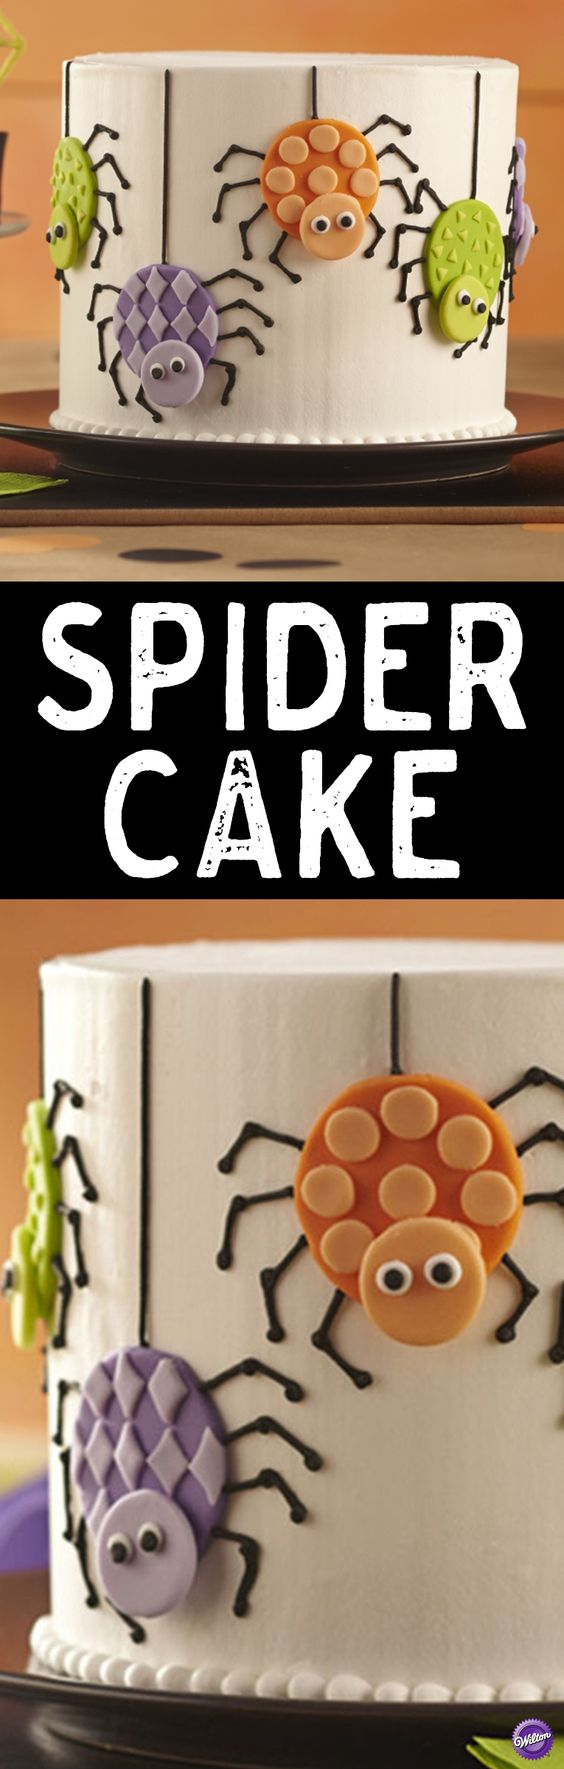 How to Make a Spider Cake - Easily make colorful fondant spiders using Wilton White Decorator Preferred Fondant and Round Double Cut-Outs Set. The creepy-crawlies decorate the side of a cake that's perfect to serve at a Halloween party.